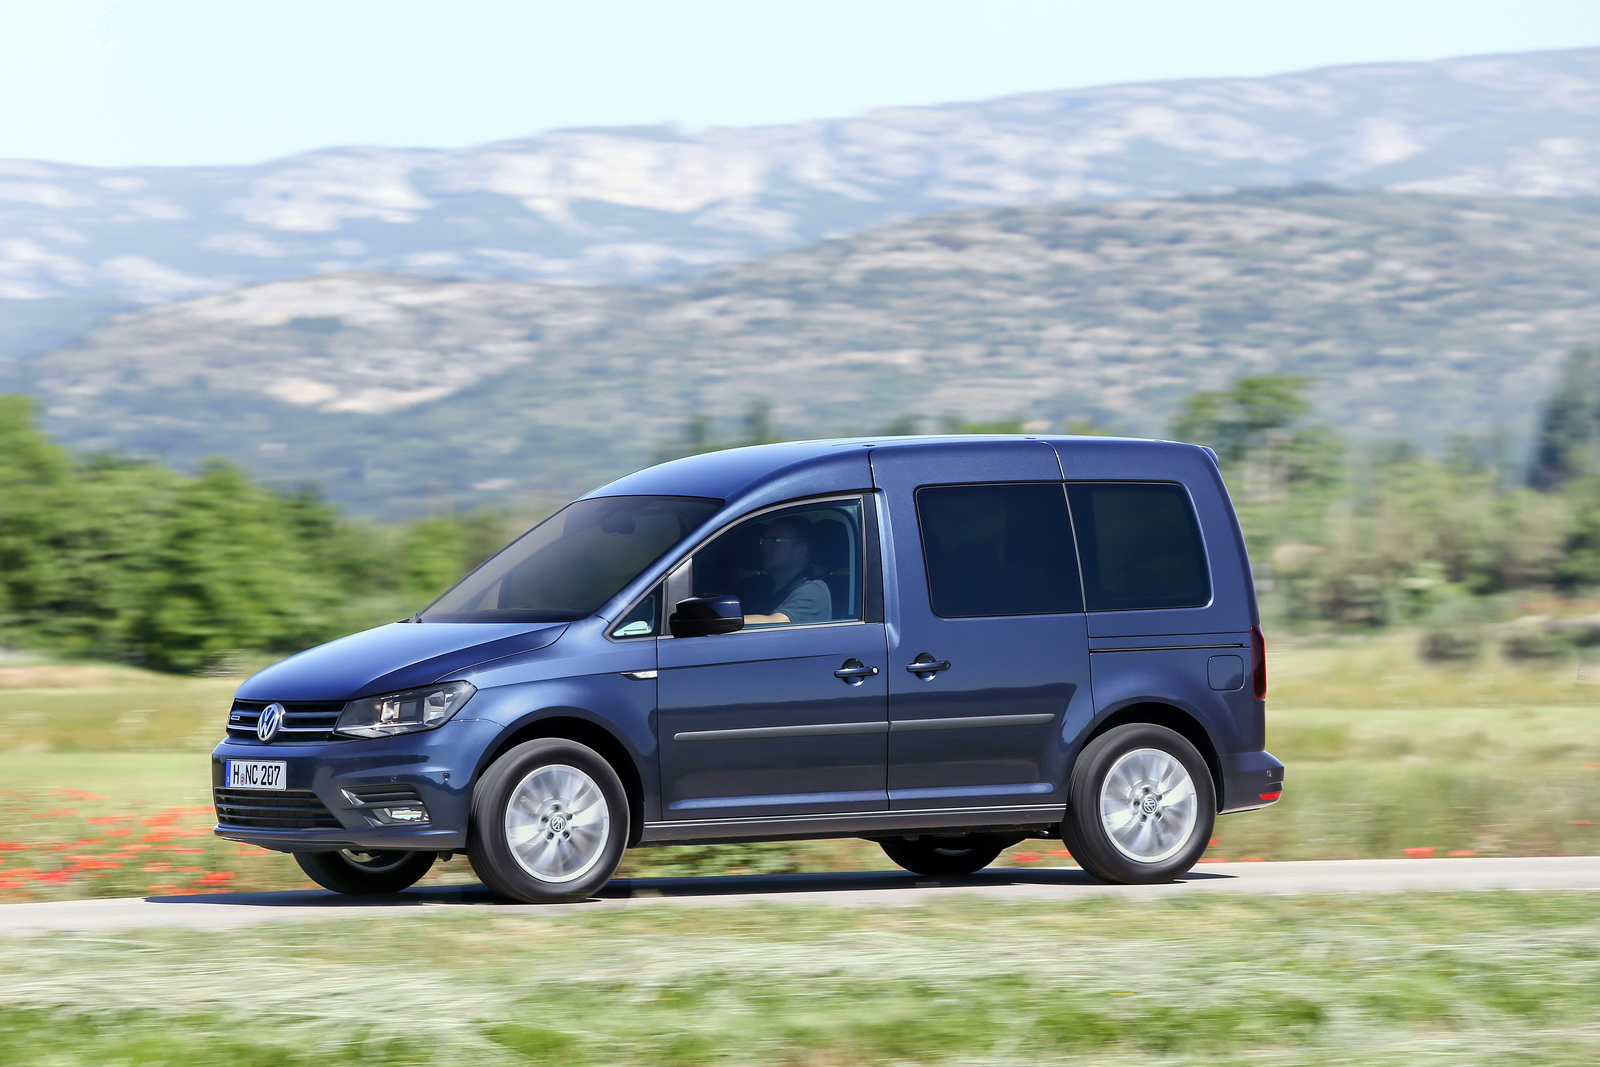 new vw caddy tgi is the first van to combine natural gas and dsg box carscoops. Black Bedroom Furniture Sets. Home Design Ideas